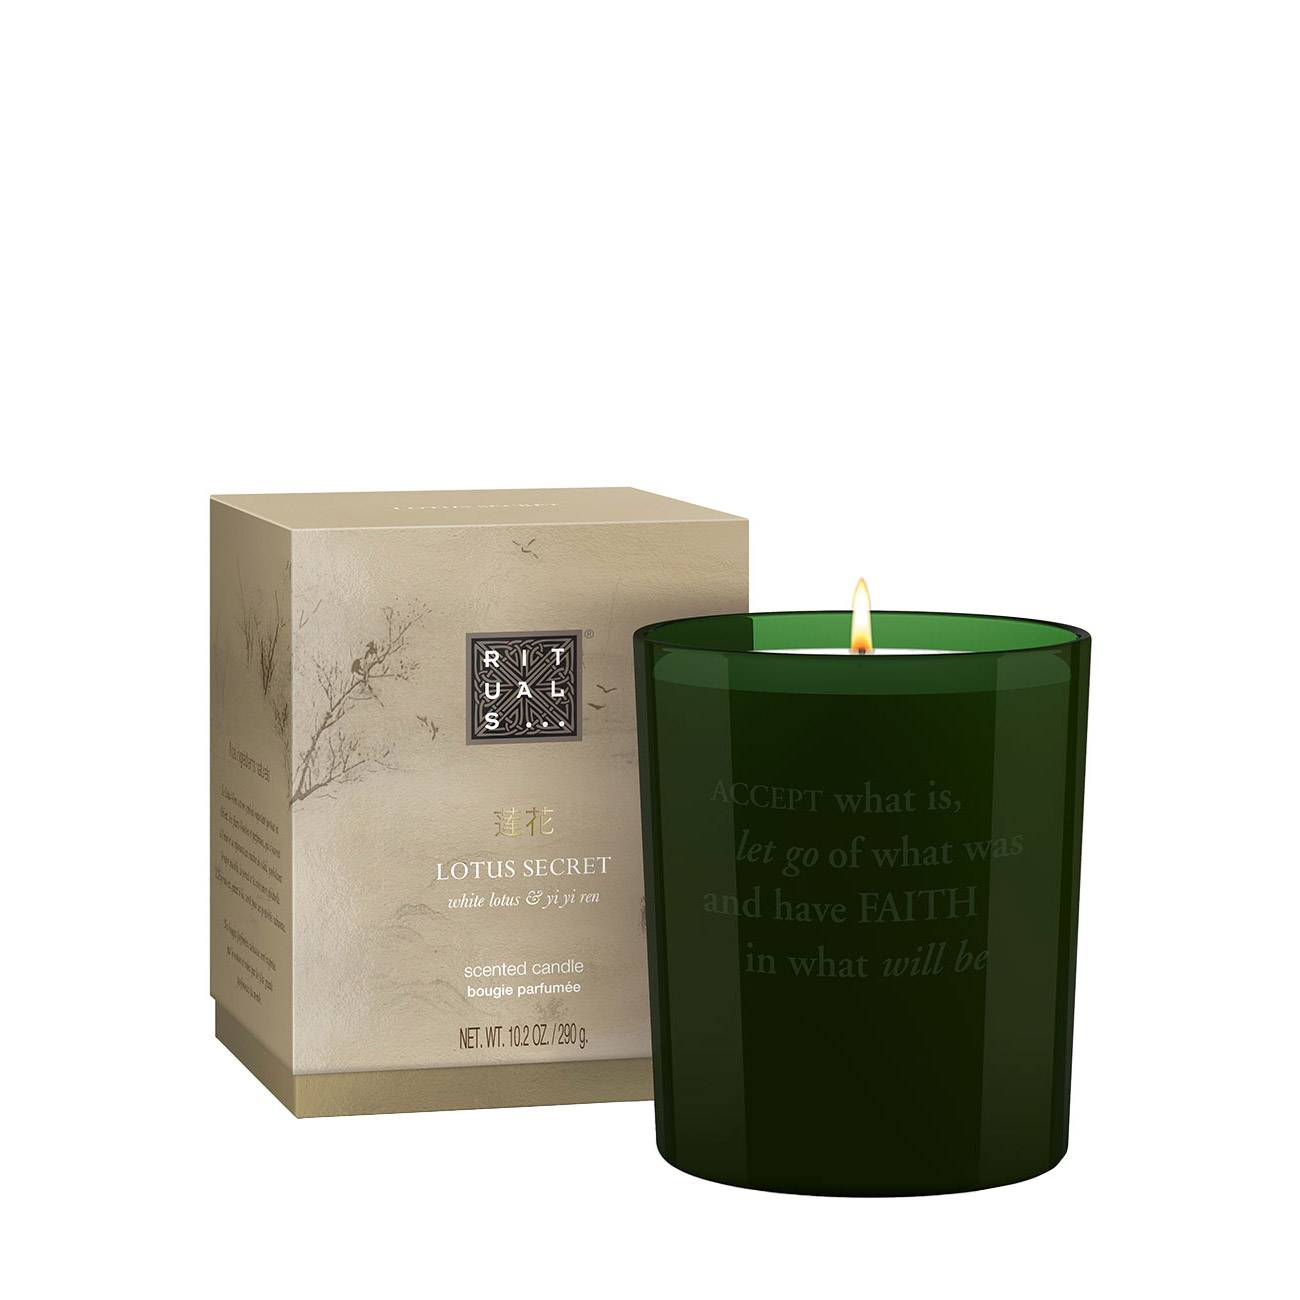 Lotus Secret Candle 250 Grame Rituals imagine 2021 bestvalue.eu